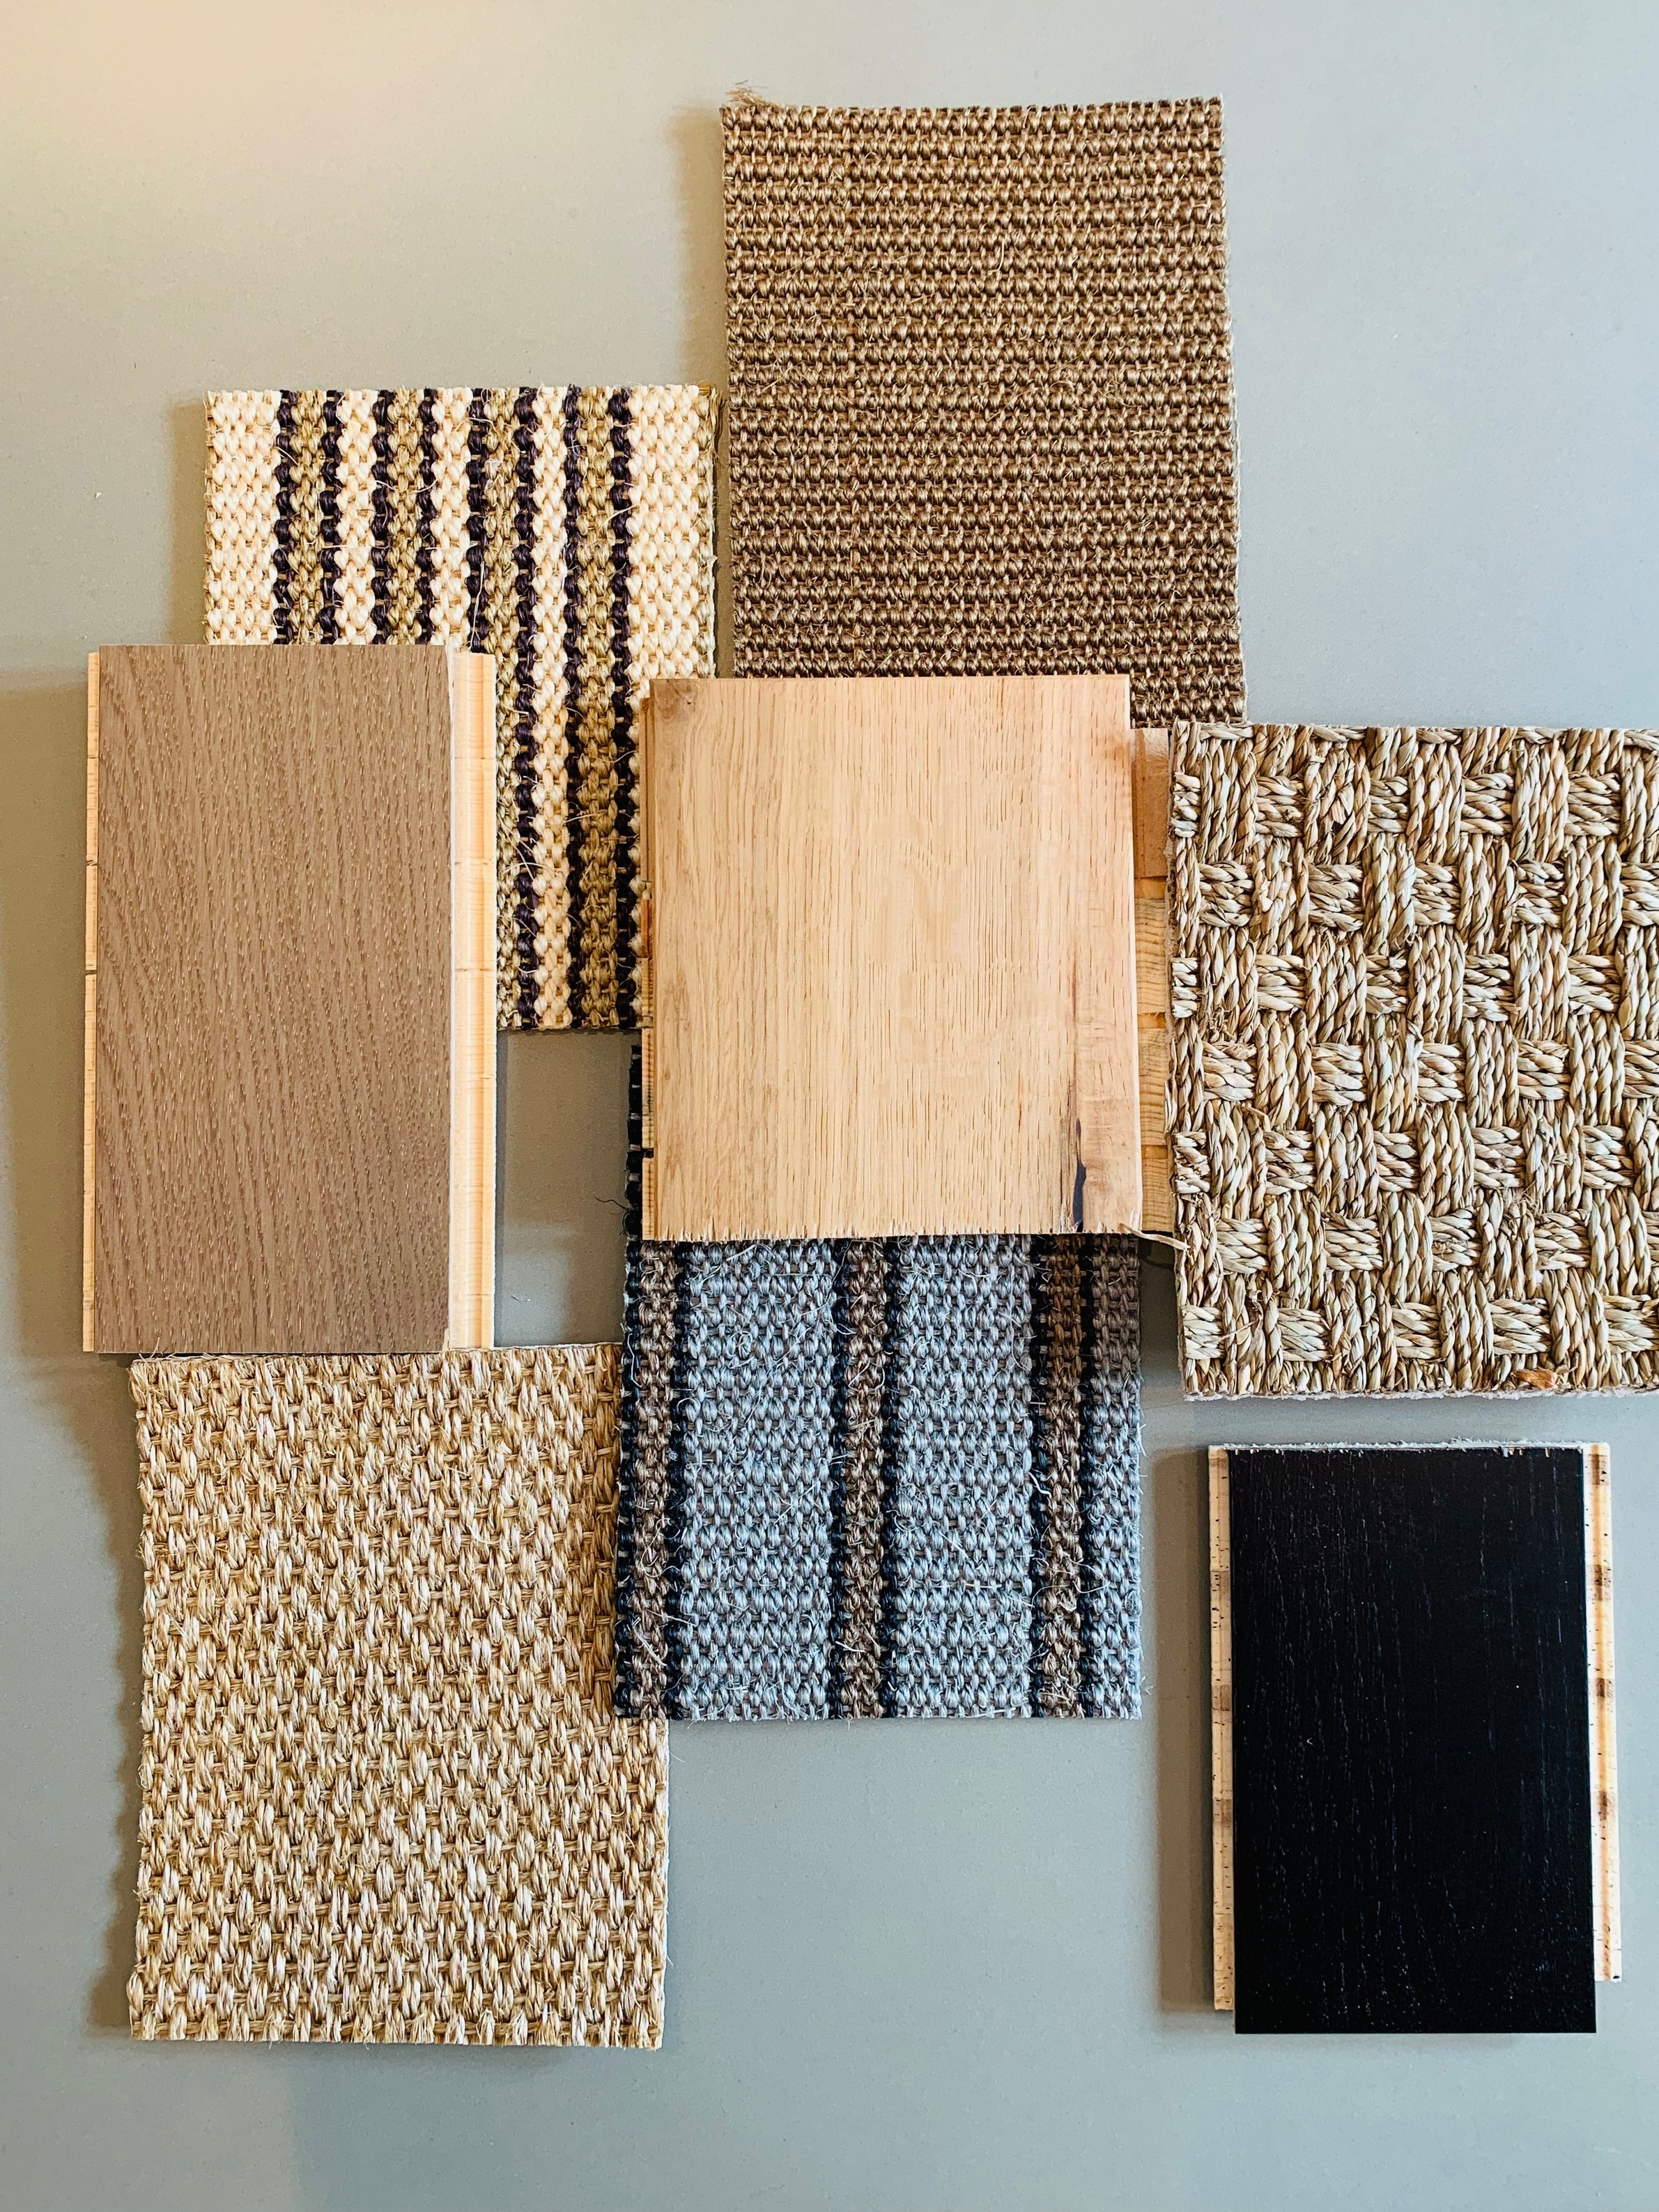 Kersaint Cobb   Floor Coverings - from Left to right; Providence Herringbone PC423, KC Sisal Panama, Morrocco Runner Colour Tetouan (stripe), KC Levana Herringbone, KC Morroco Runner Colour Oujda (Grey stripe), Top Middle- Boucle Artists in Colour Rembrandt 8043, Seagrass Basket Weave - Natural, (Bottom Right) KC Providence Herringbone in colour PC420.